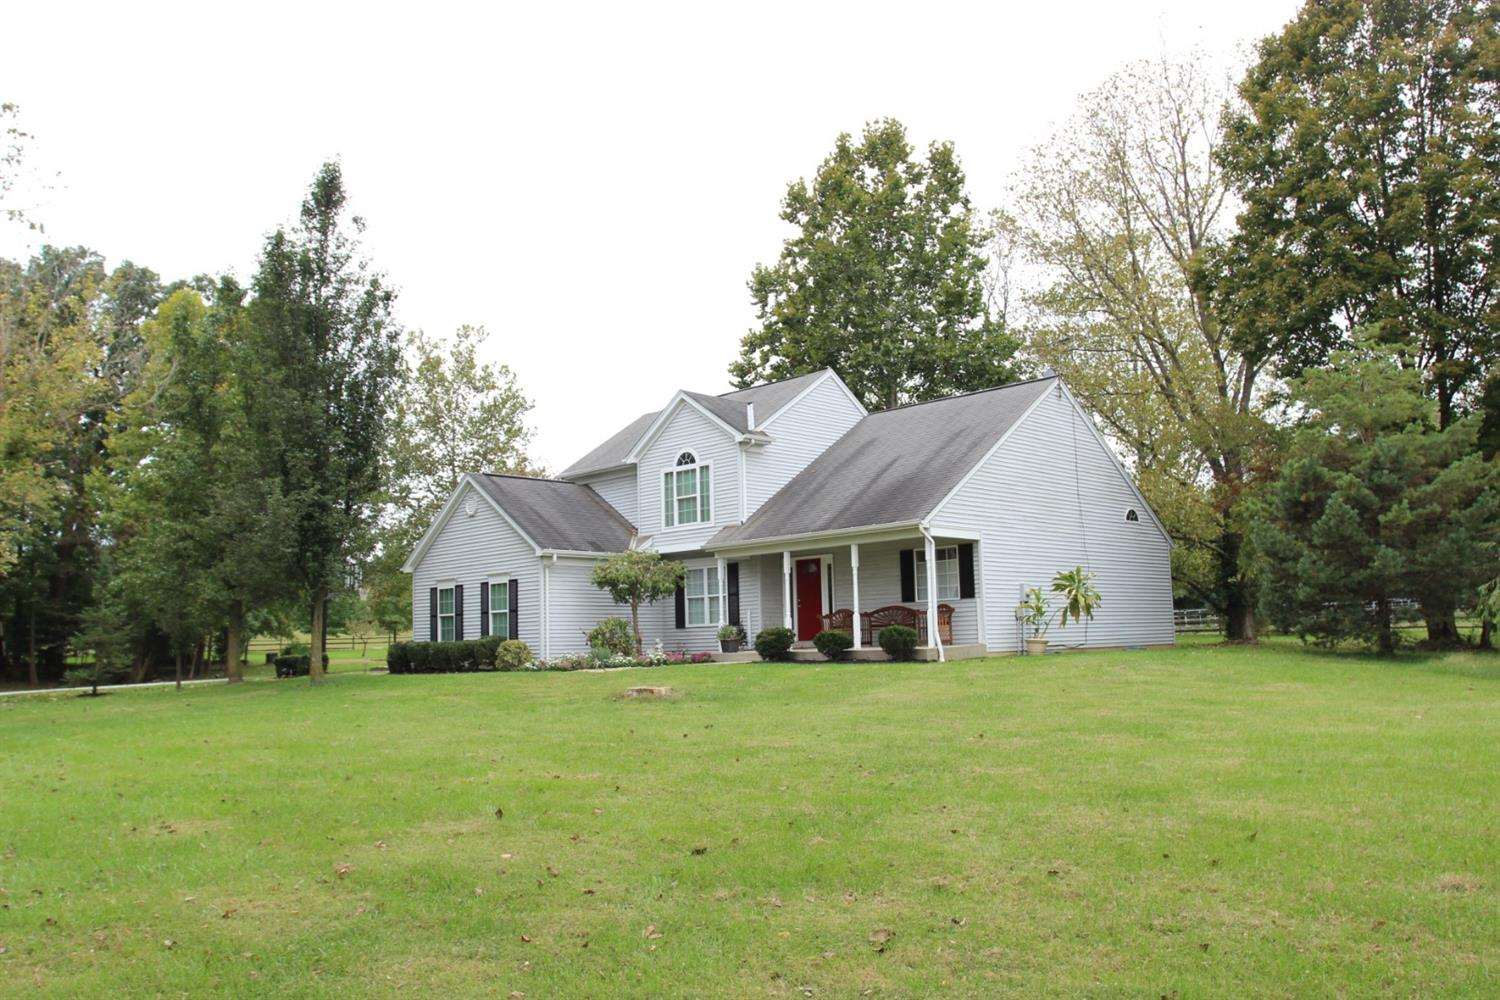 Property for sale at 4821 Salty Lane, Union Twp,  OH 45244